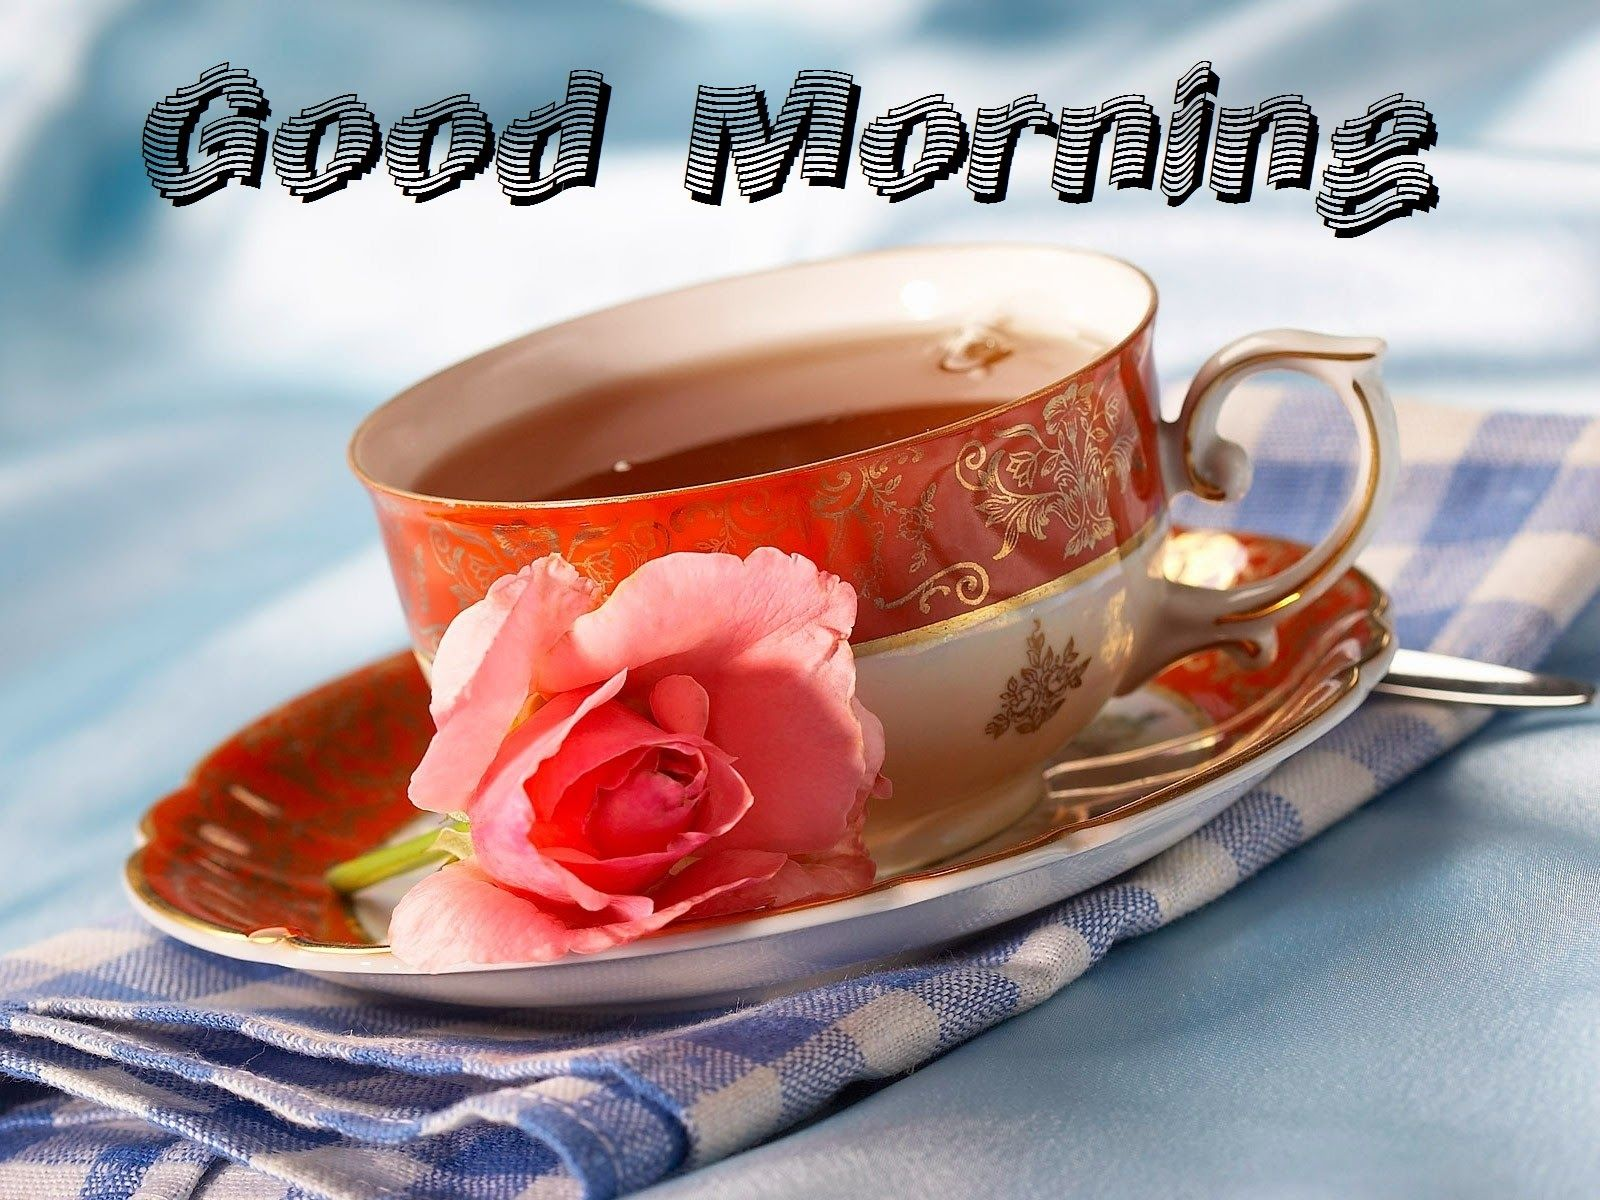 Good Morning Images For Whatsapp - Download Good Morning Images For Whatsapp , HD Wallpaper & Backgrounds